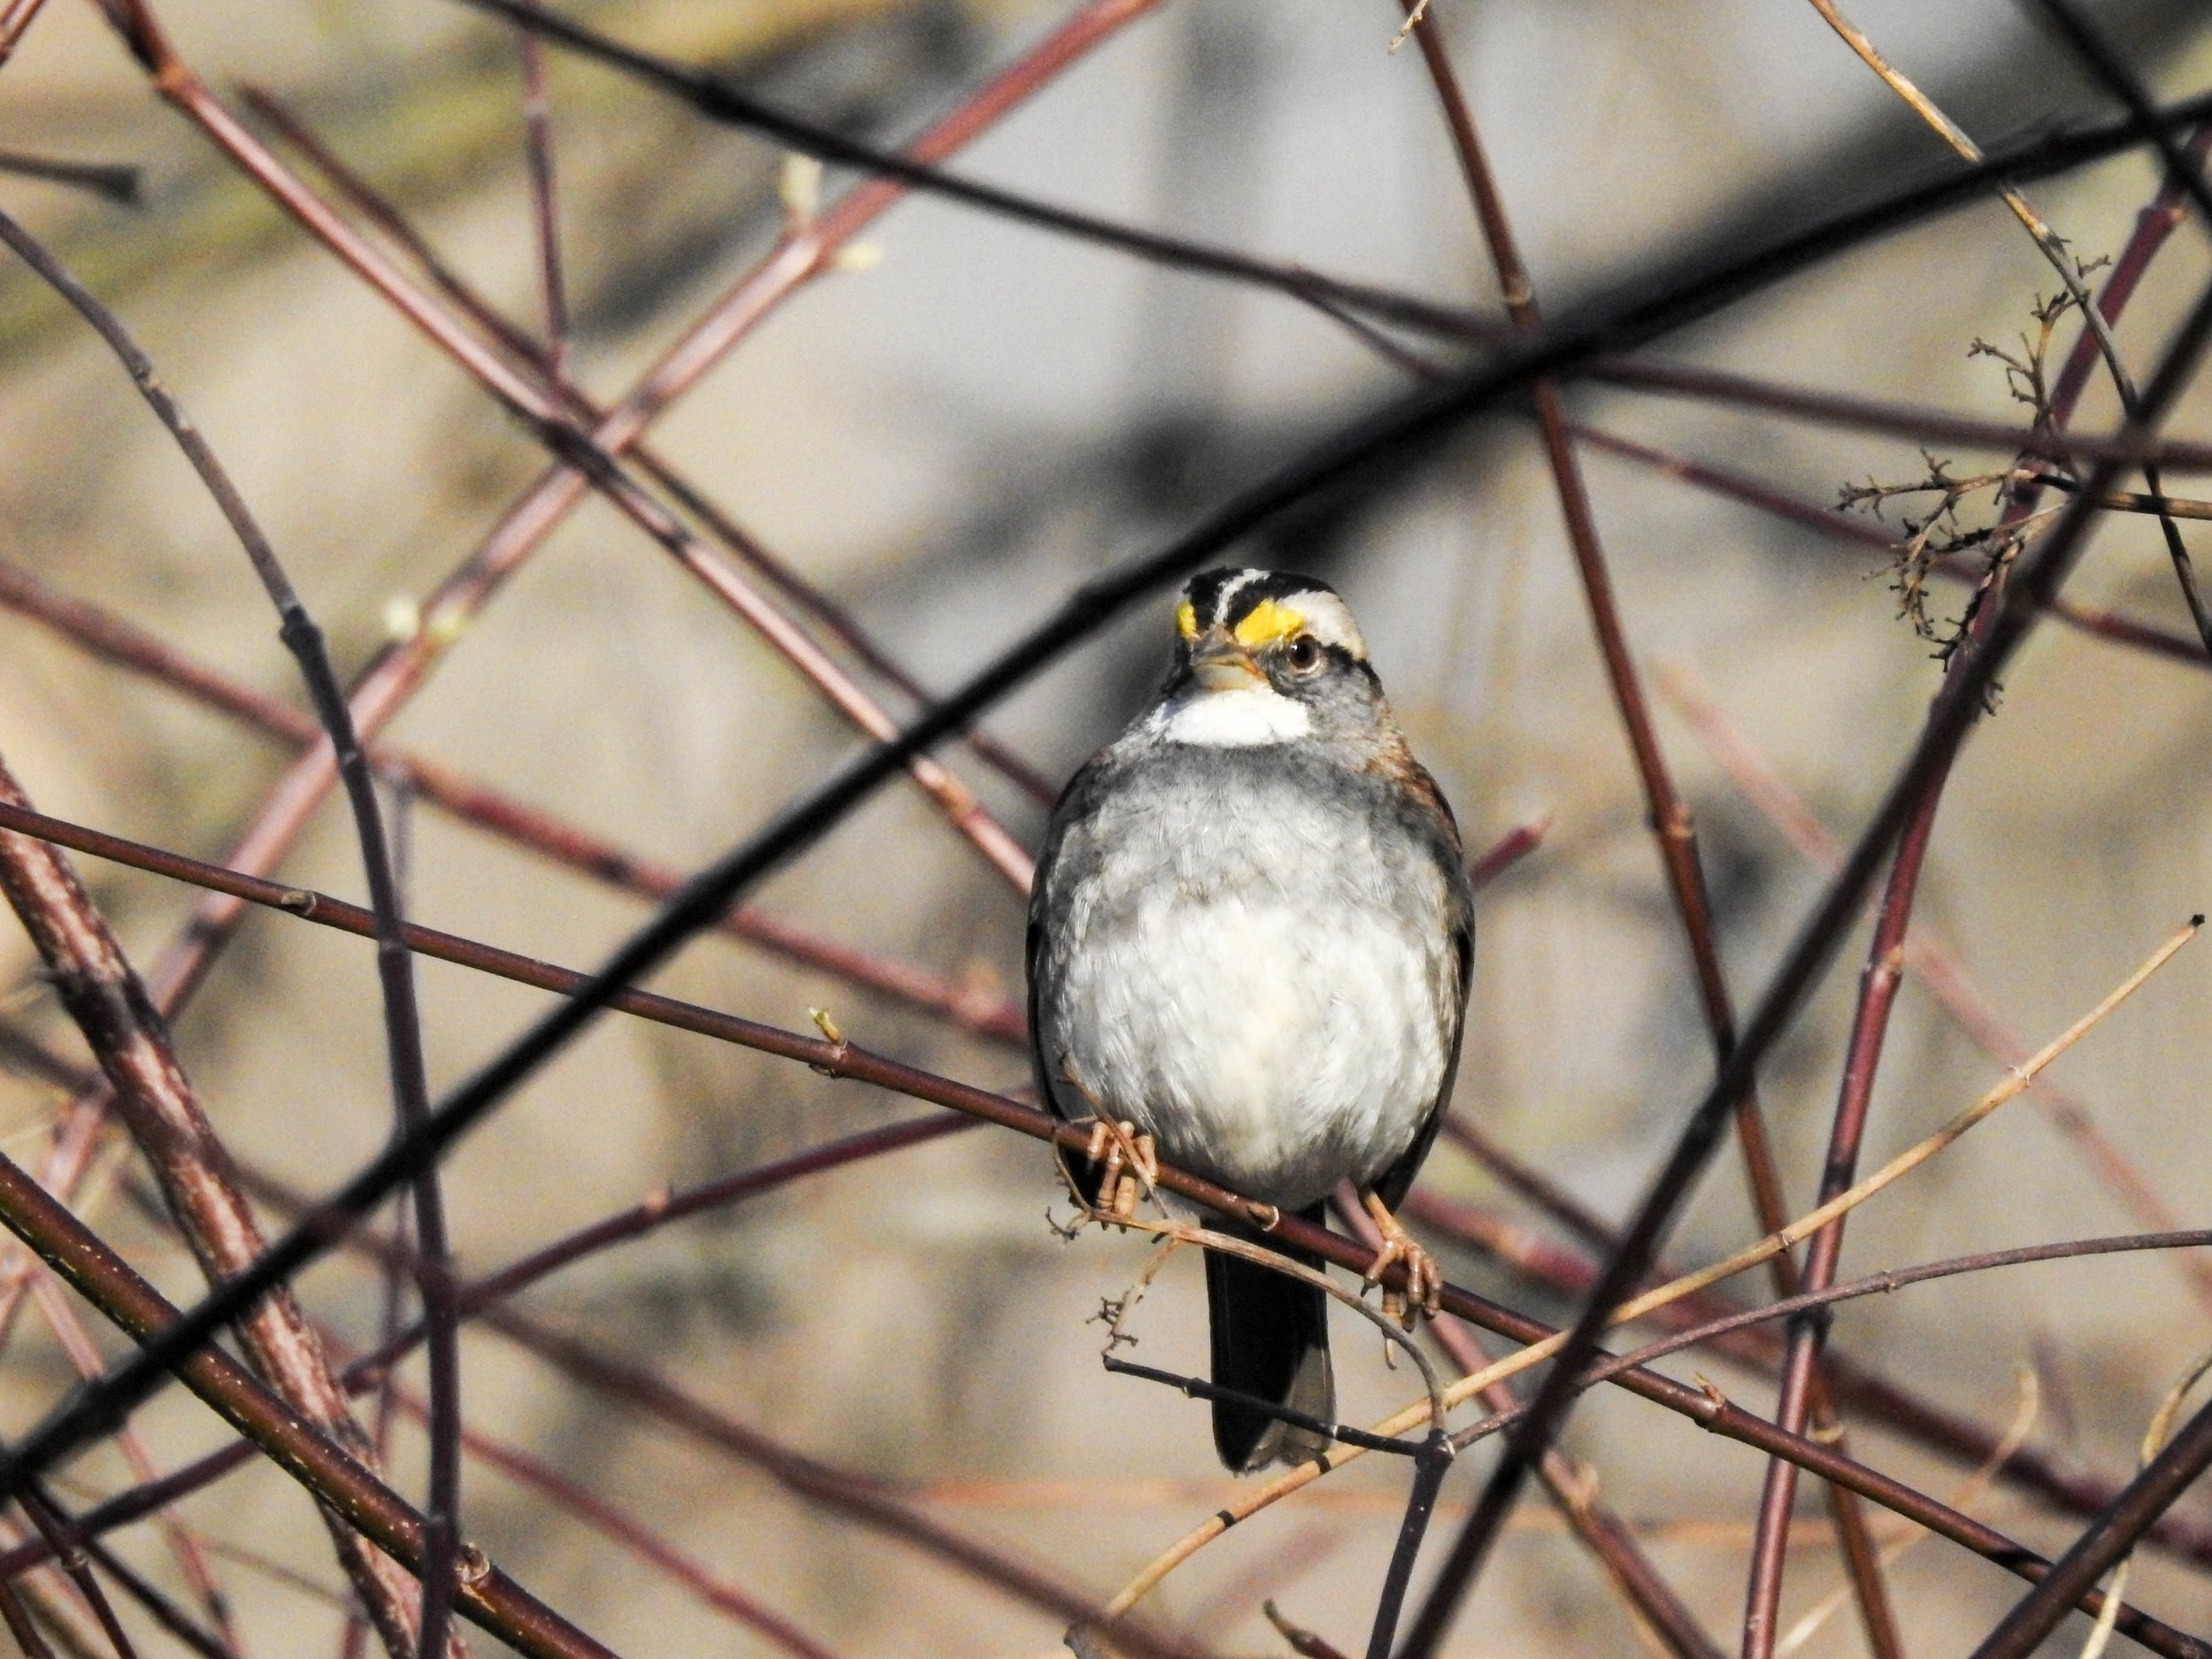 White-throated Sparrow, February 26, 2017